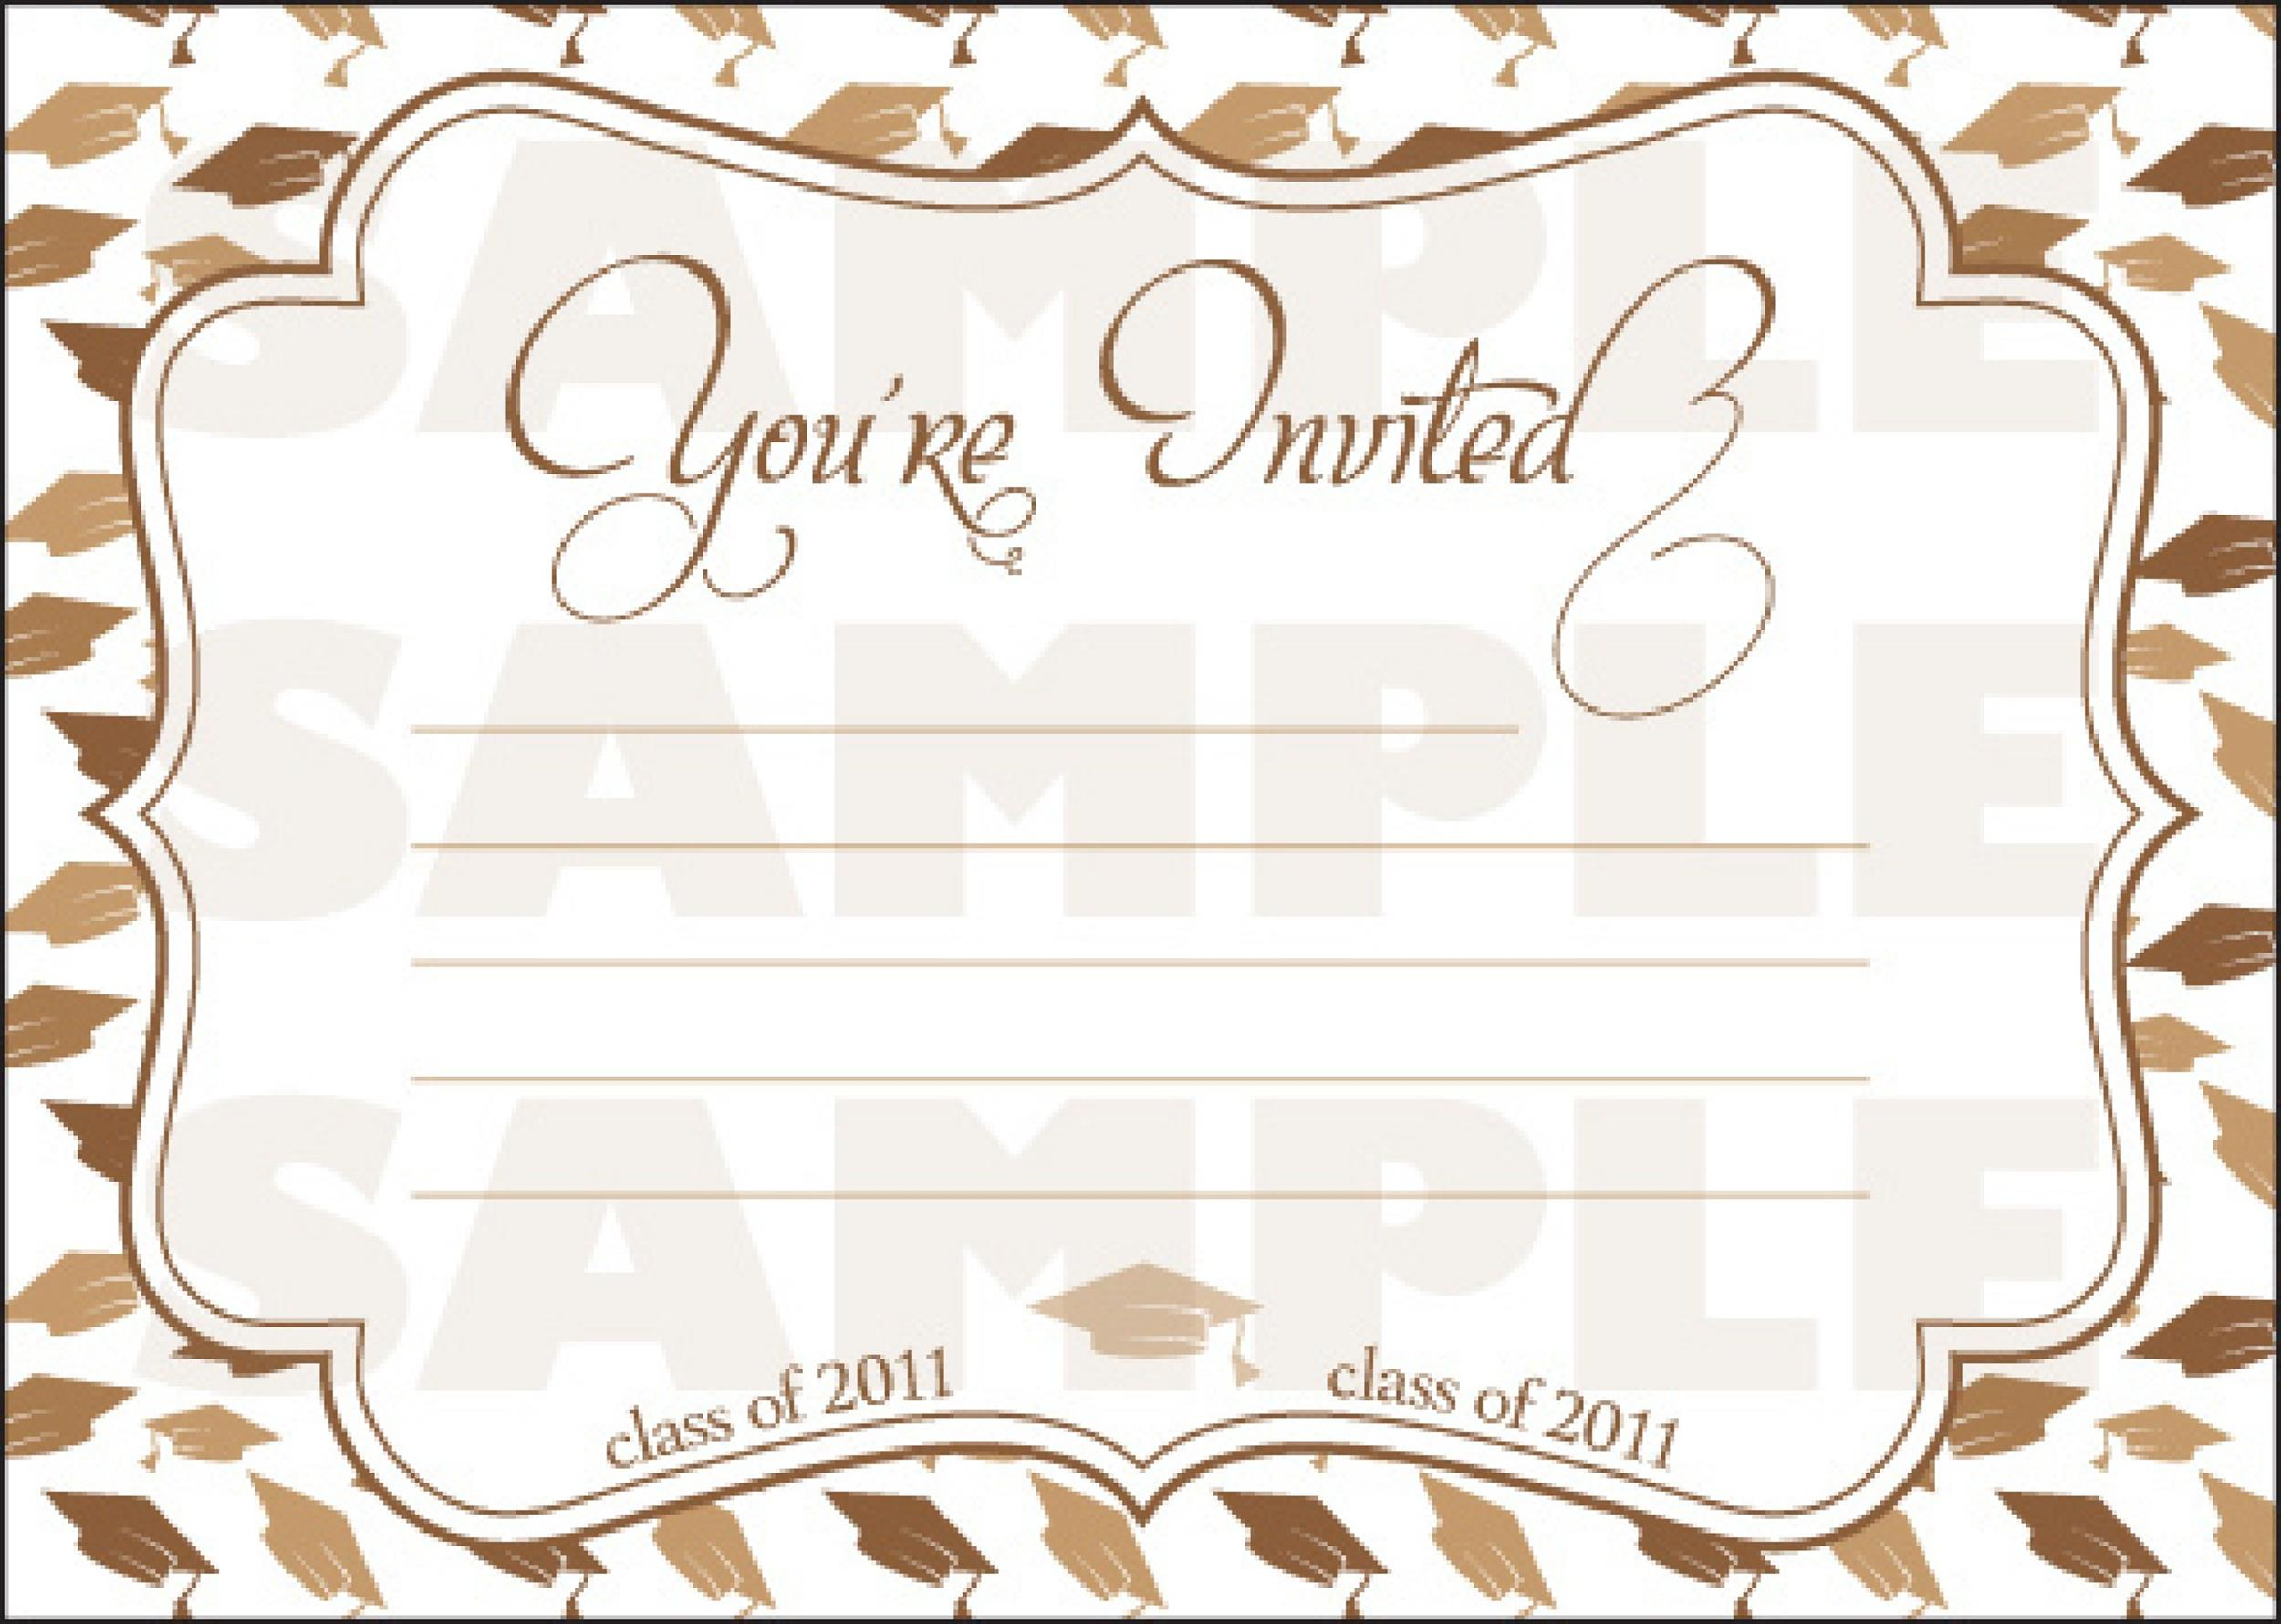 40+ FREE Graduation Invitation Templates - Template Lab - free printable invitations graduation